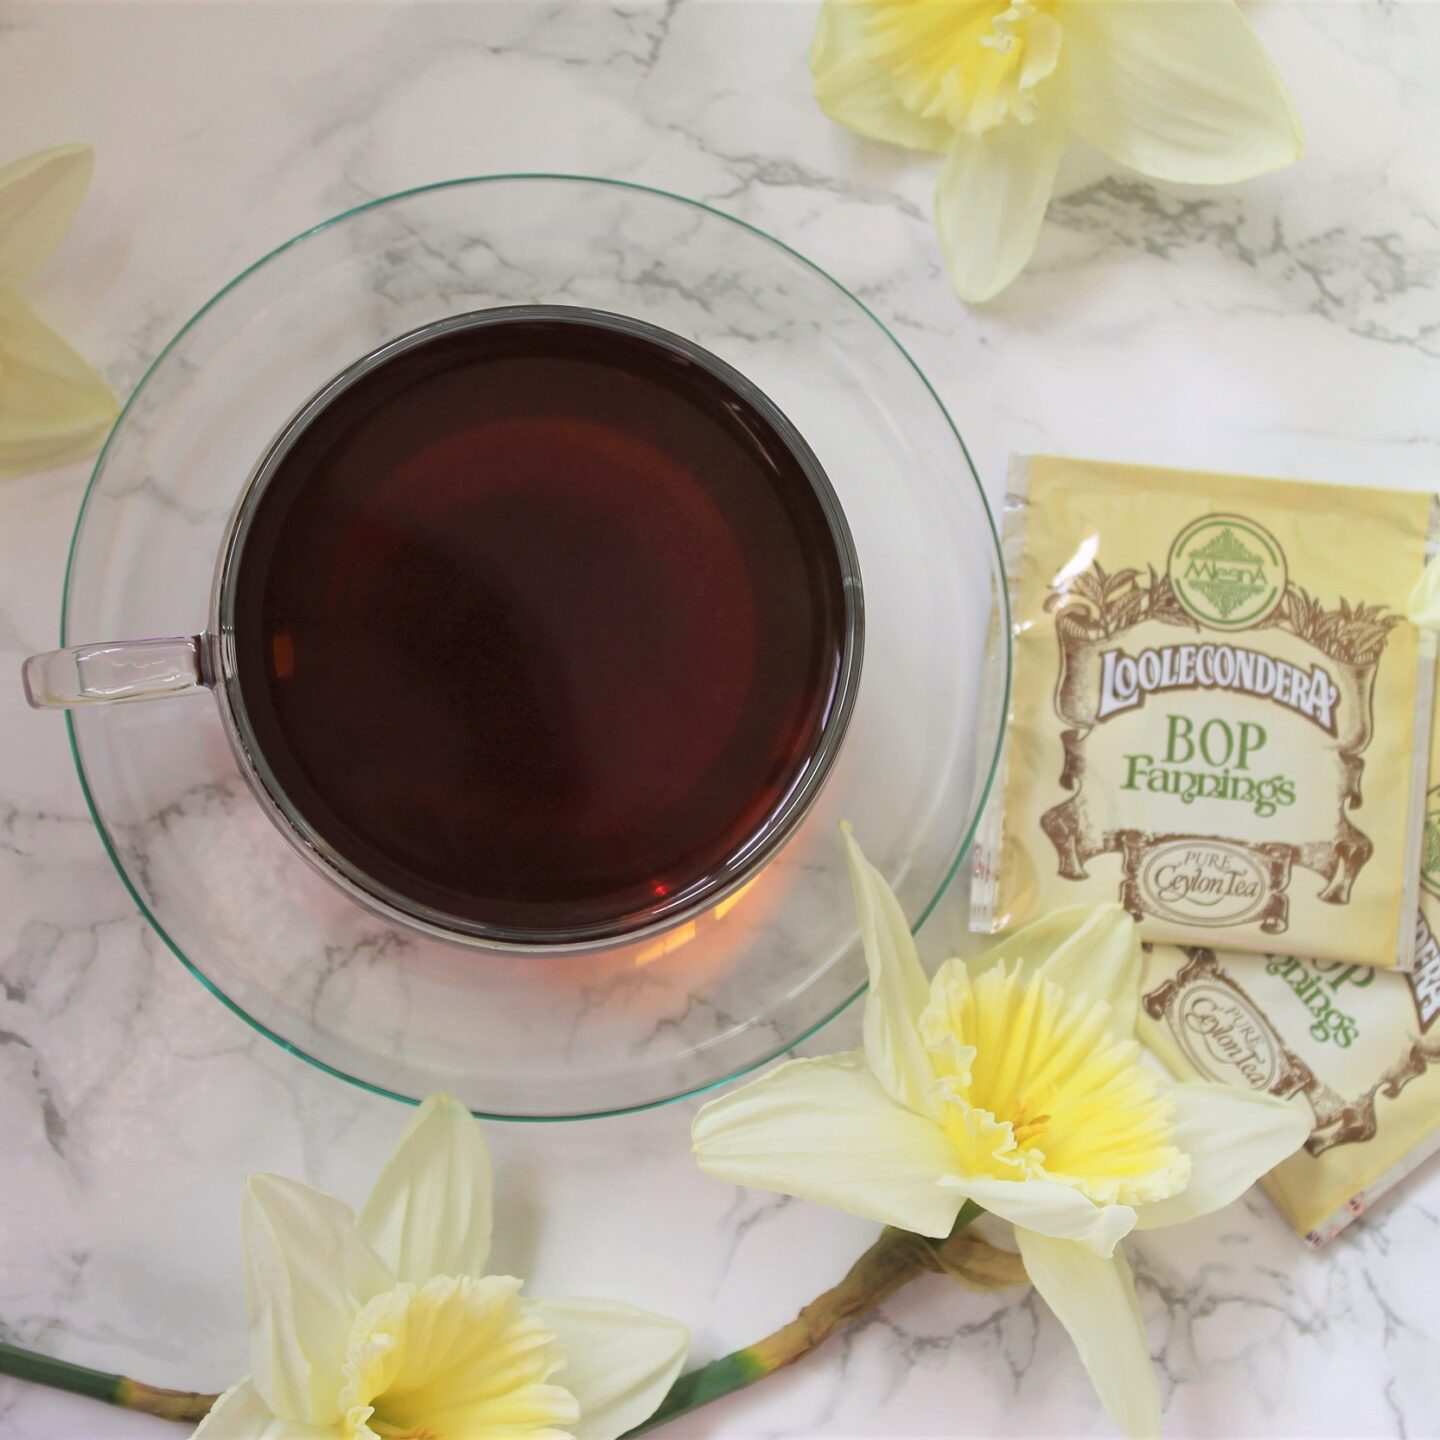 Mlesna Loolecondera BOP Black Tea Review